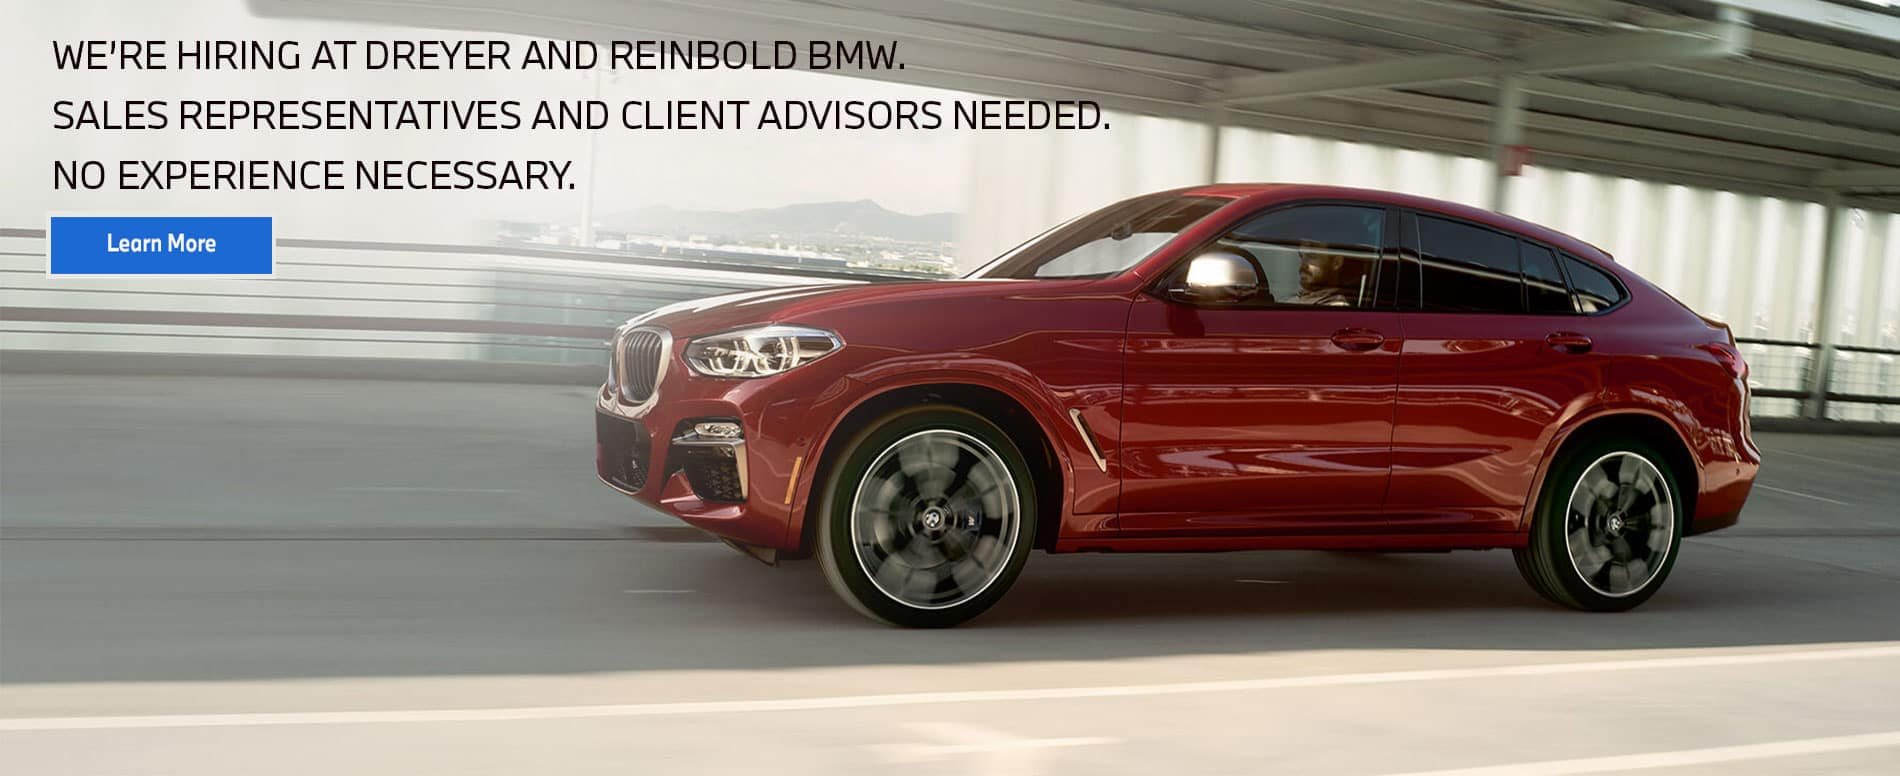 We are hiring! Click to Learn More. Image of red vehicle driving on road.